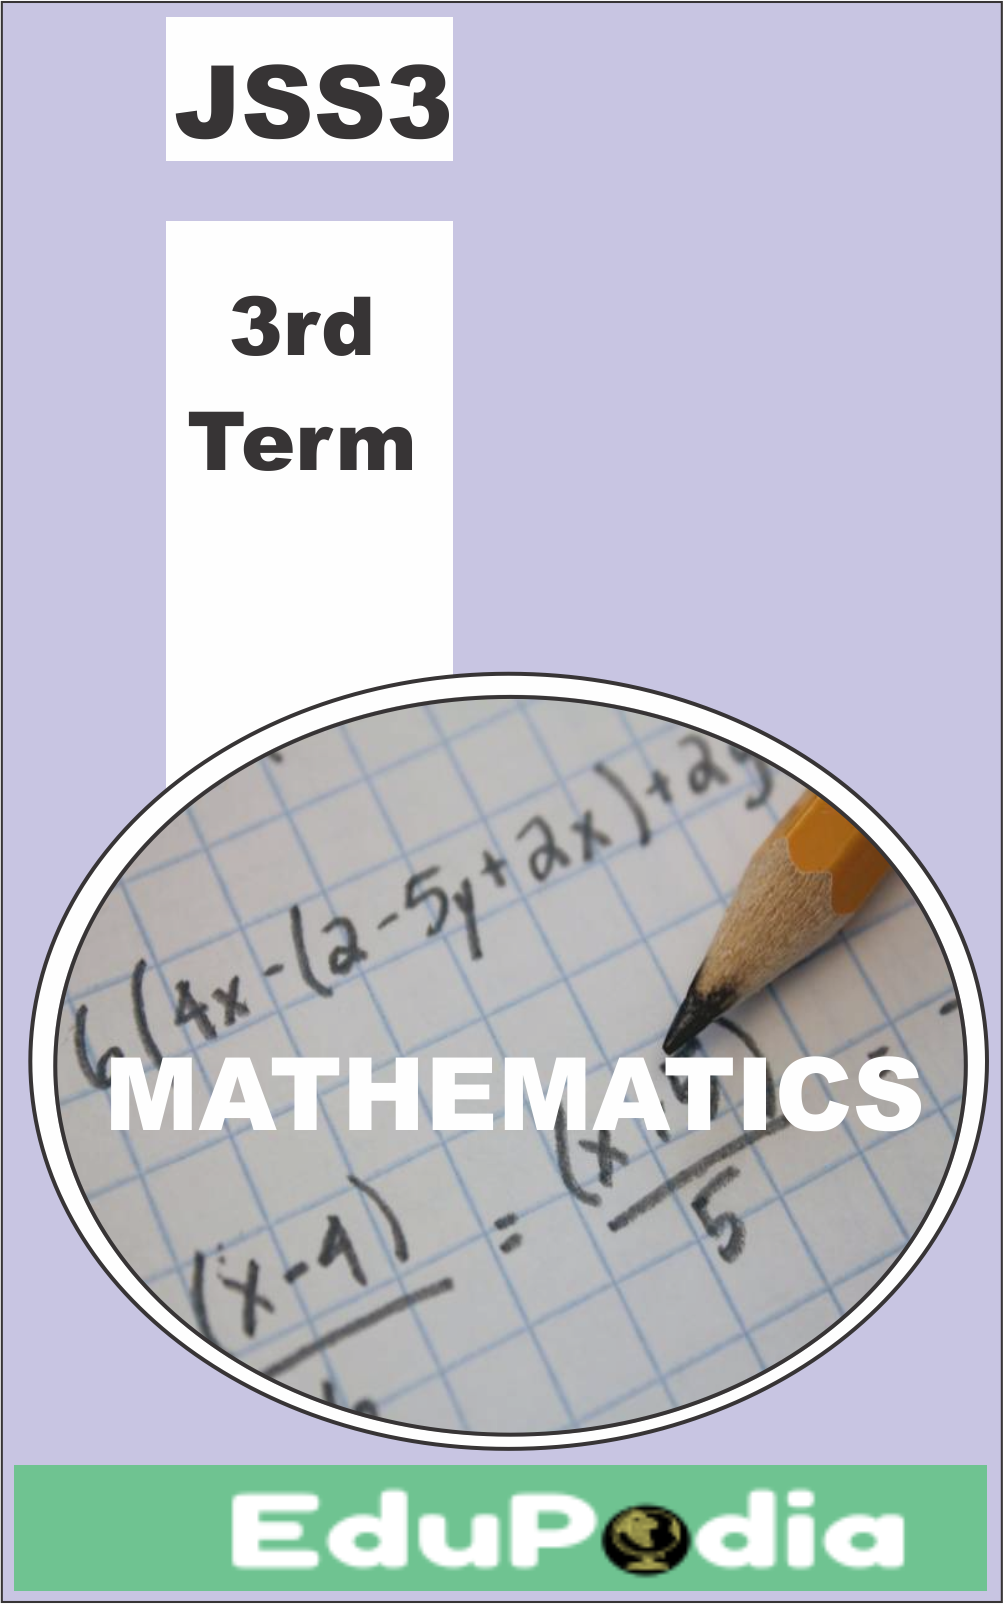 Third Term JSS3 Mathematics lesson note